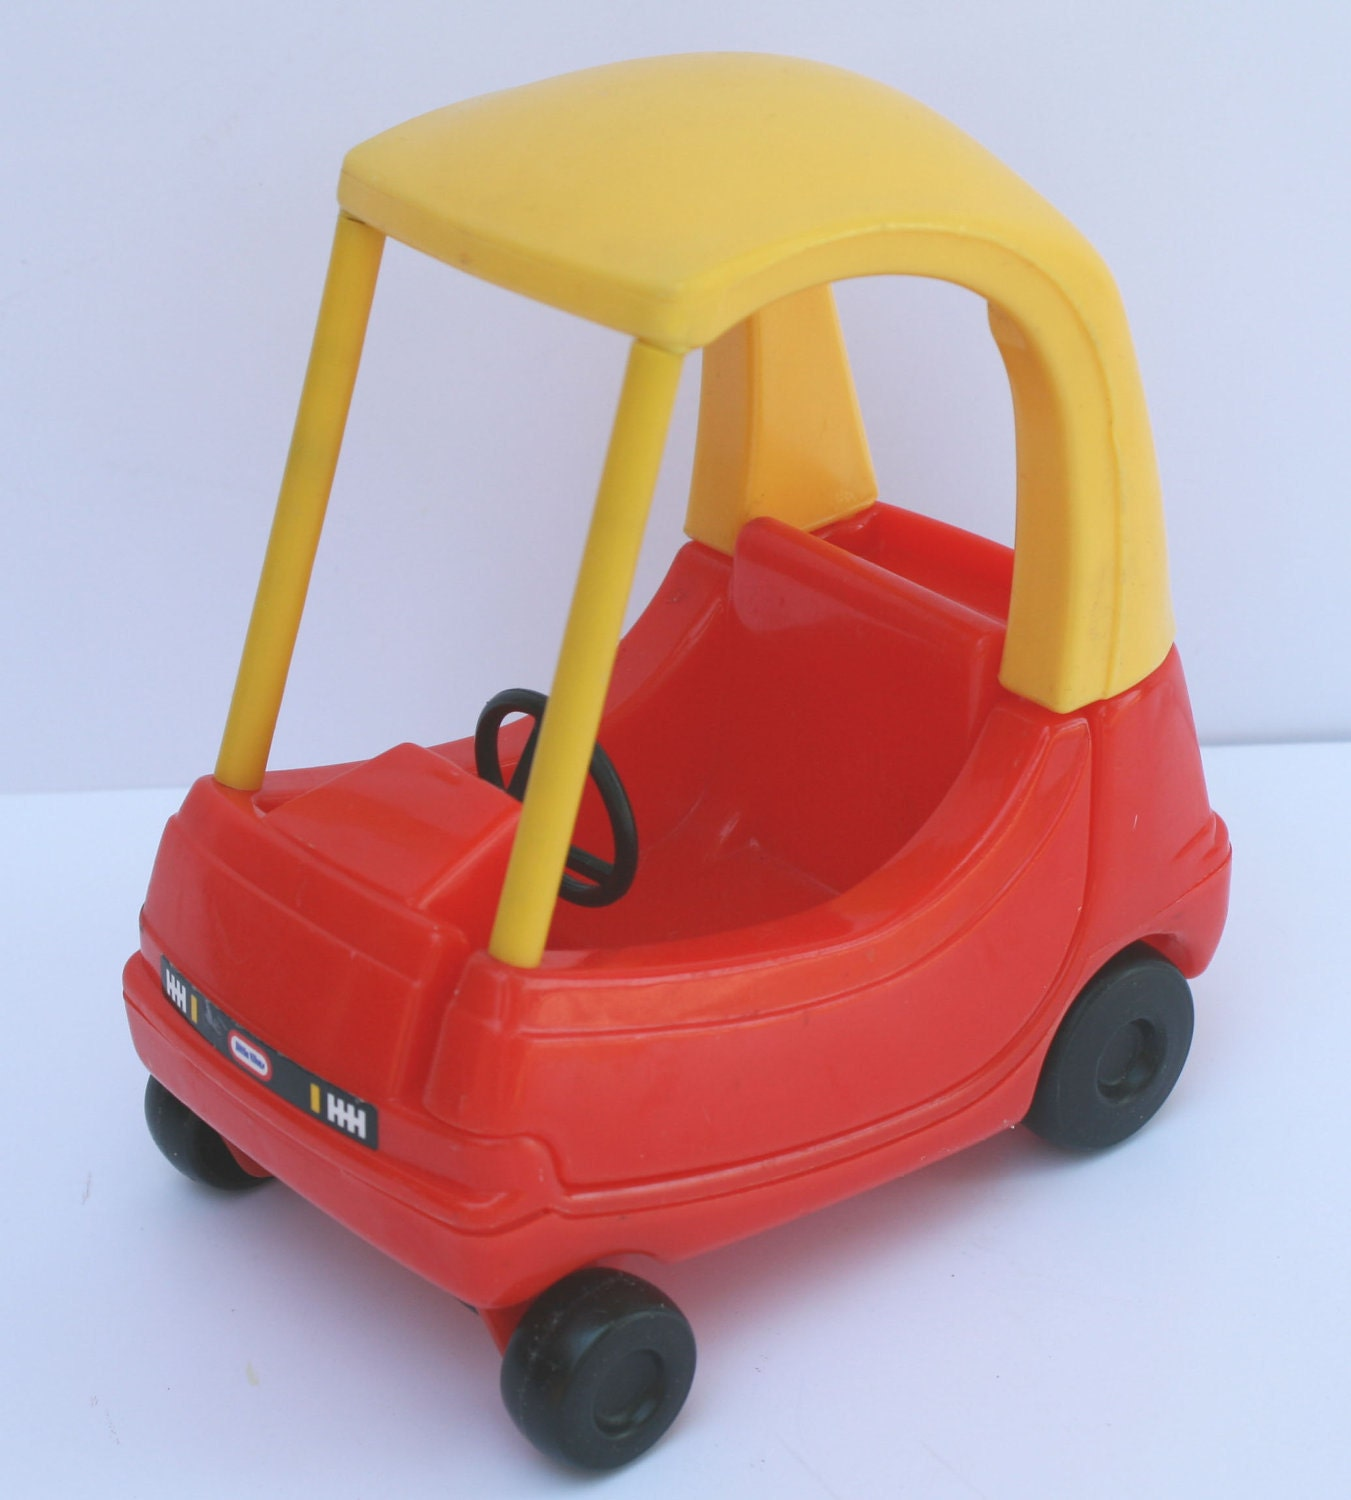 Vintage Little Tikes Mini Cozy Coupe Dollhouse Size Car